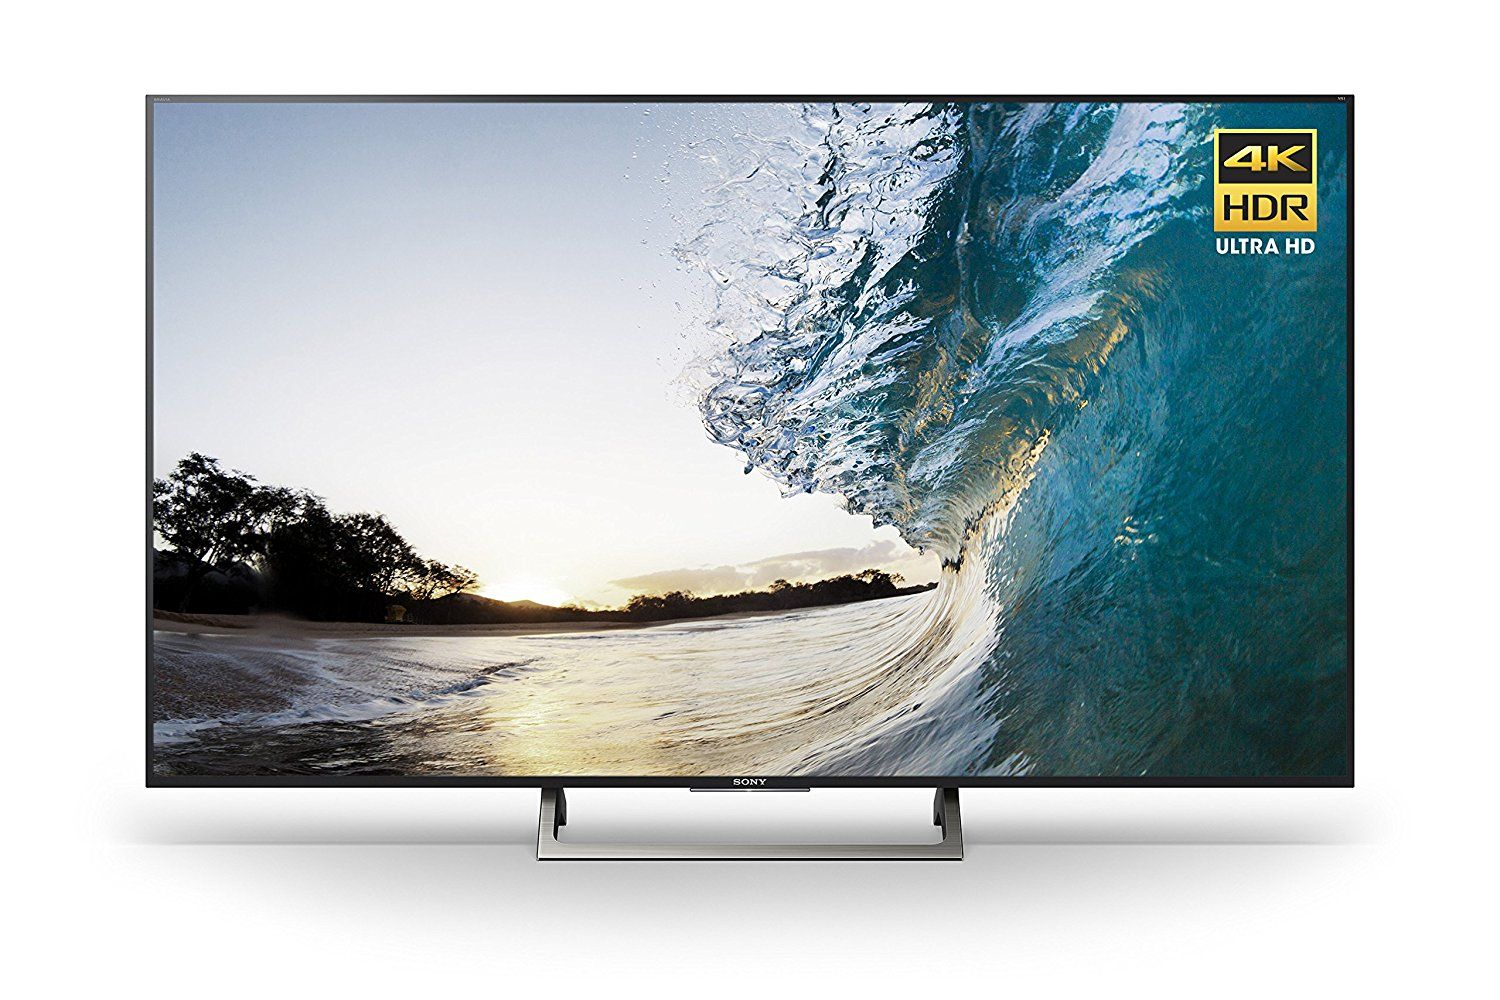 sony tv 4k oled. best 4k tv 2018, tv, oled panasonic lg sony tv 4k oled